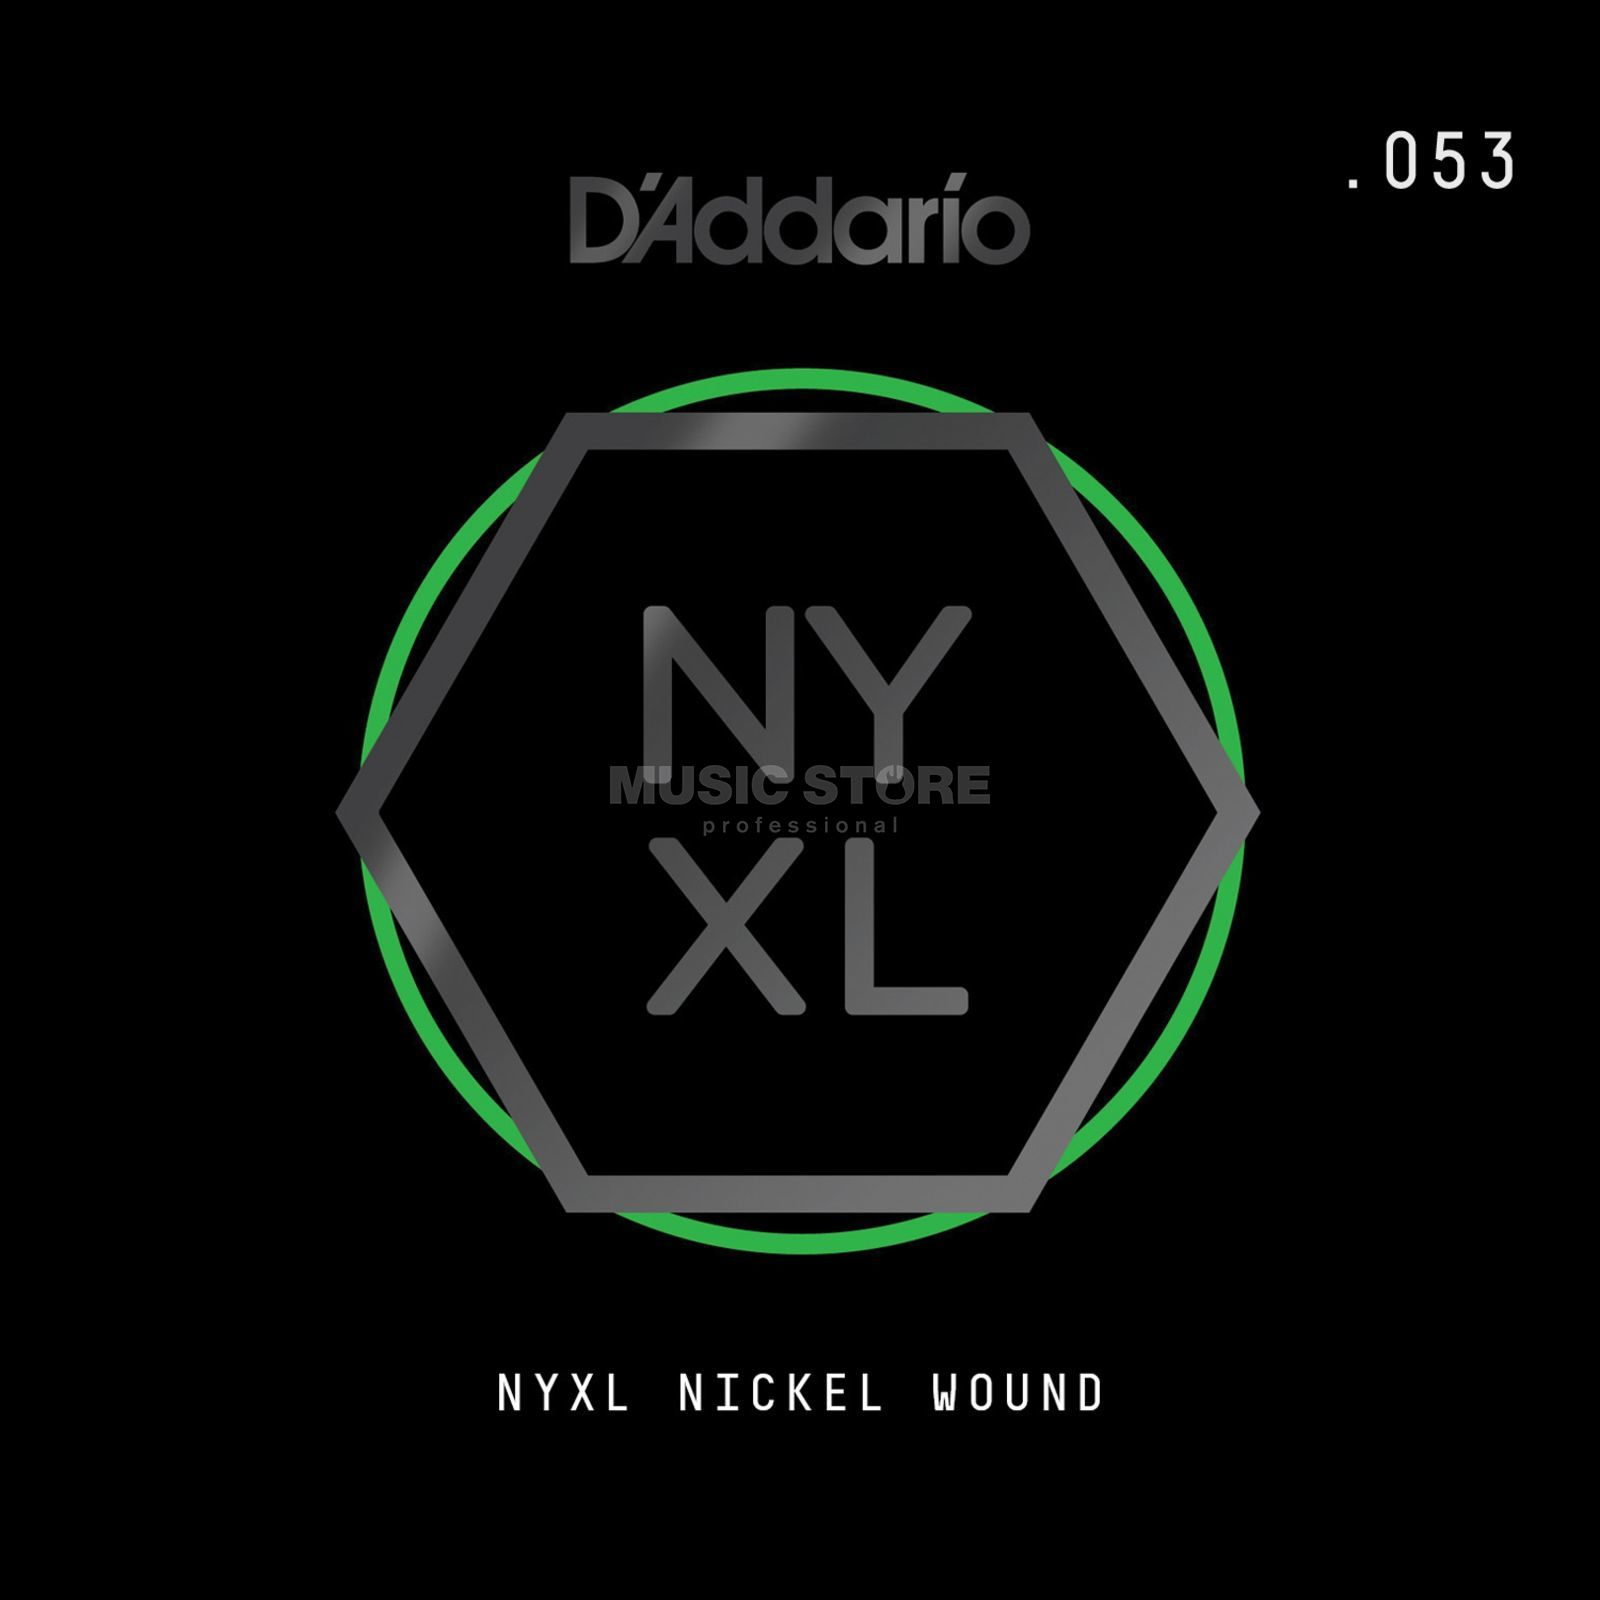 D'Addario NYNW053 Single String Nickel Wound Immagine prodotto